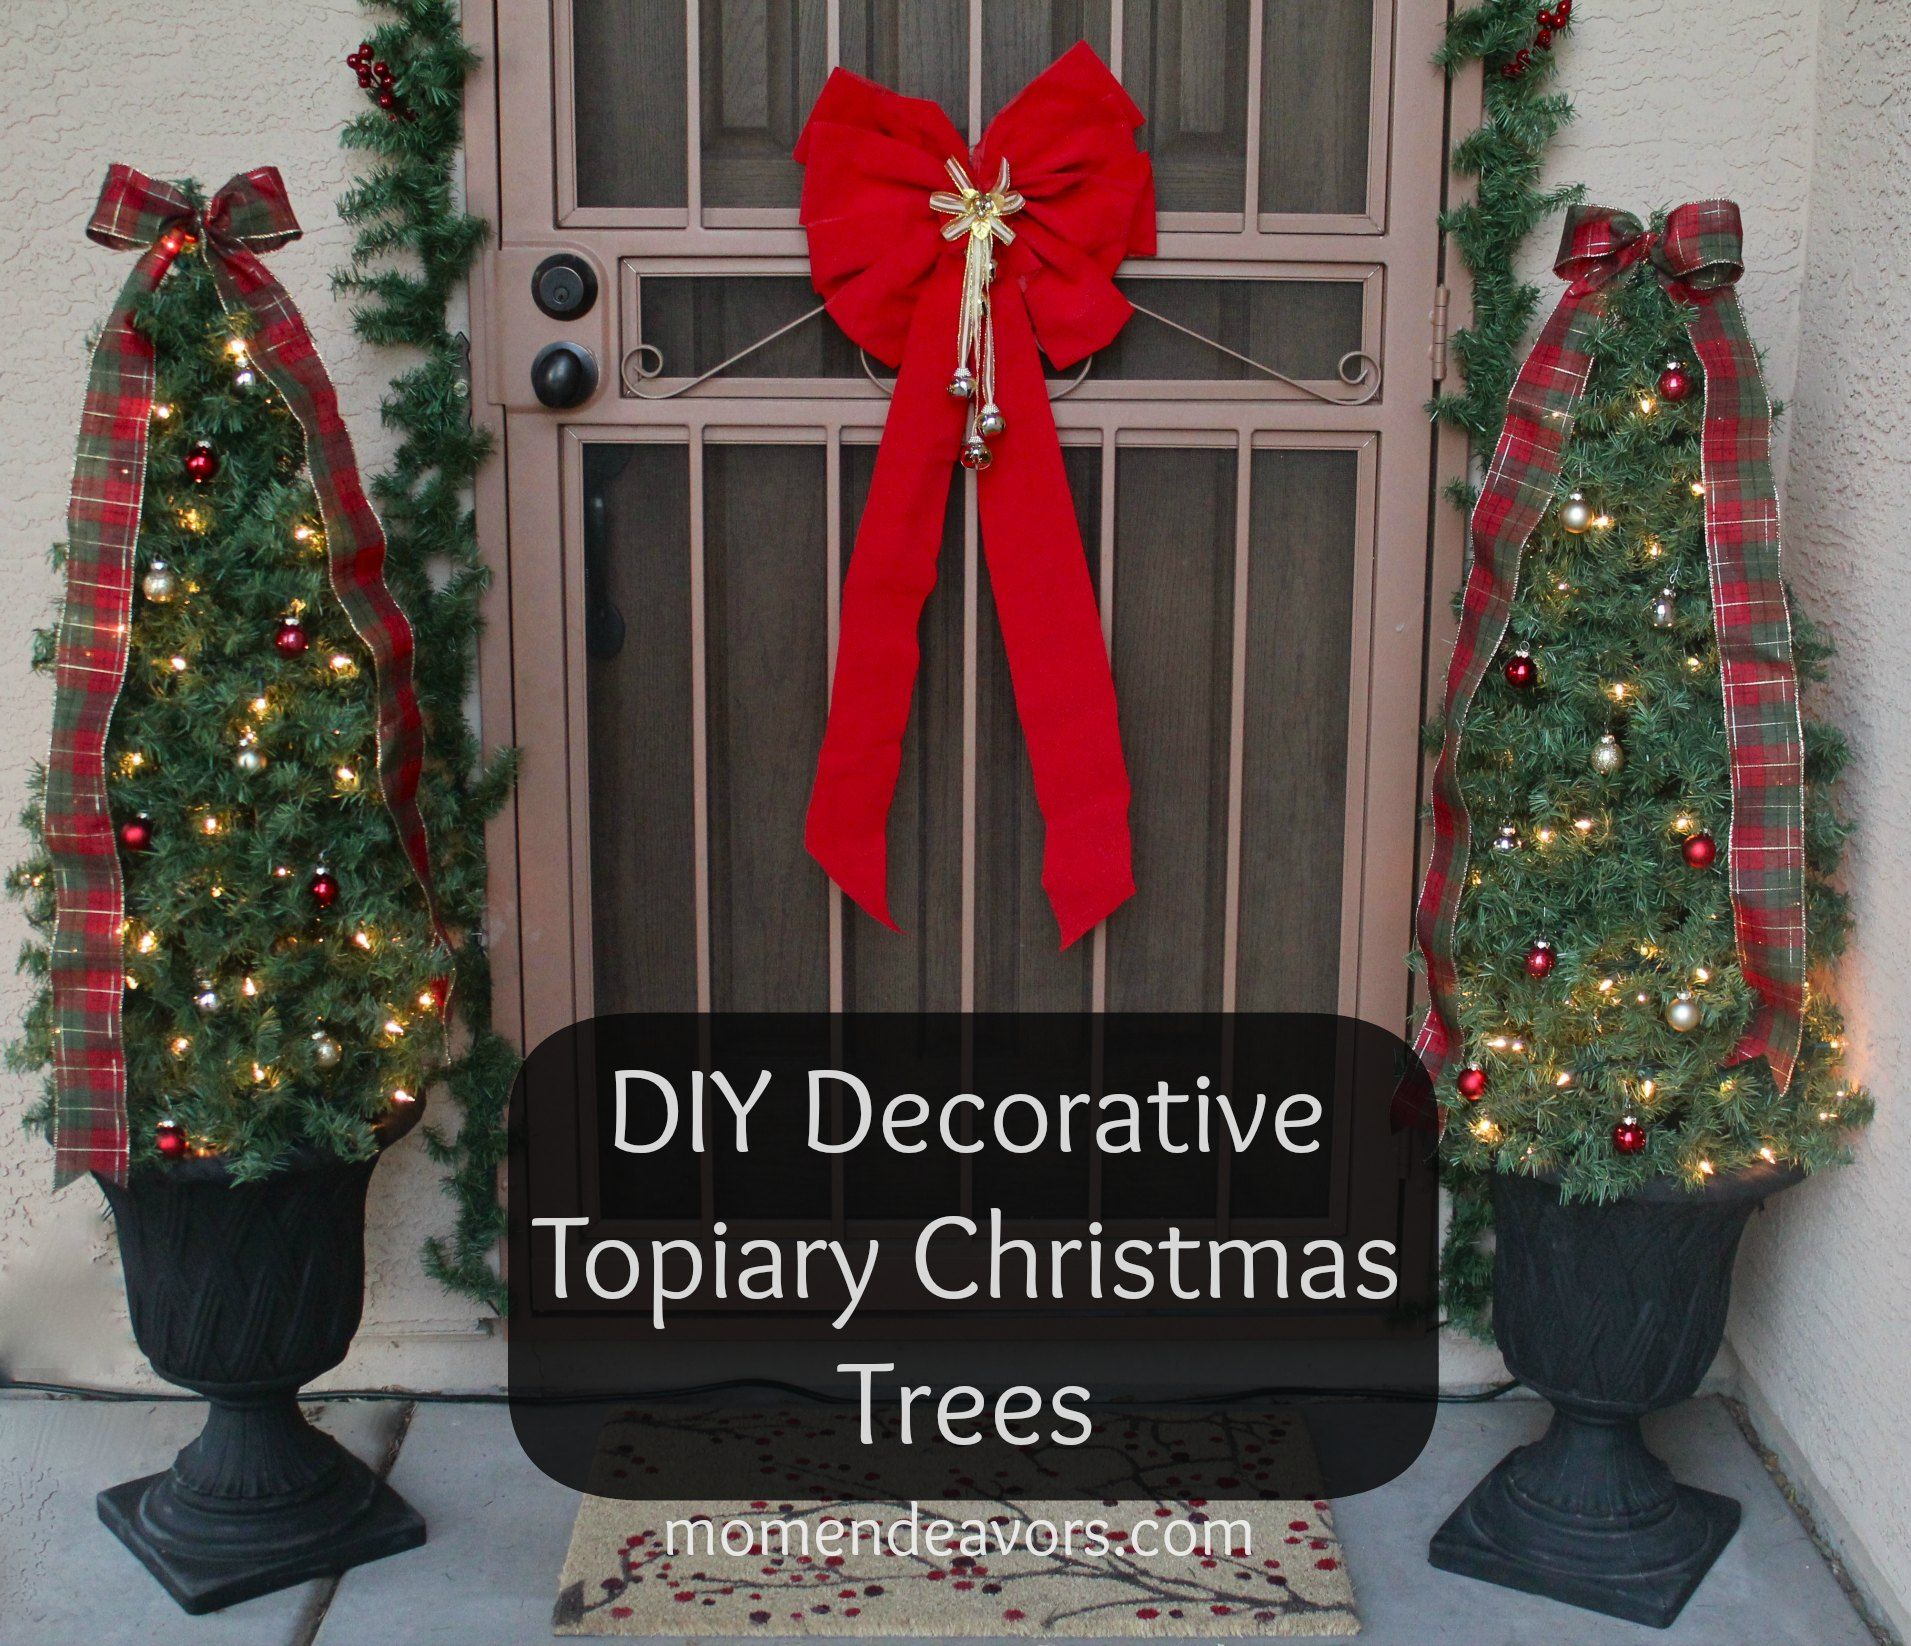 Diy Decorative Topiary Christmas Trees From Mom Endeavors Lowescreator